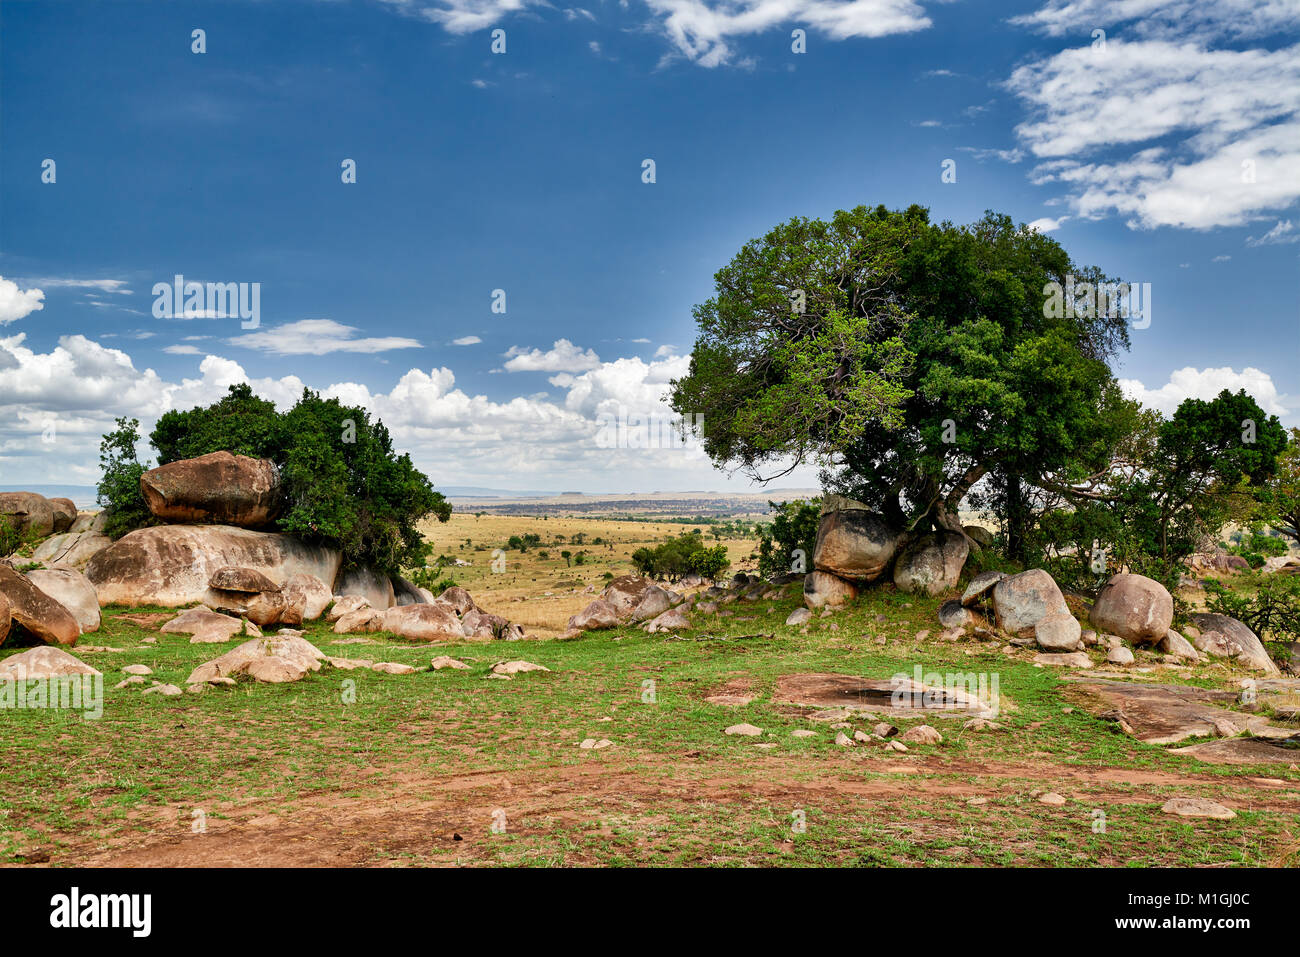 landscape of Serengeti National Park, UNESCO world heritage site, Tanzania, Africa - Stock Image